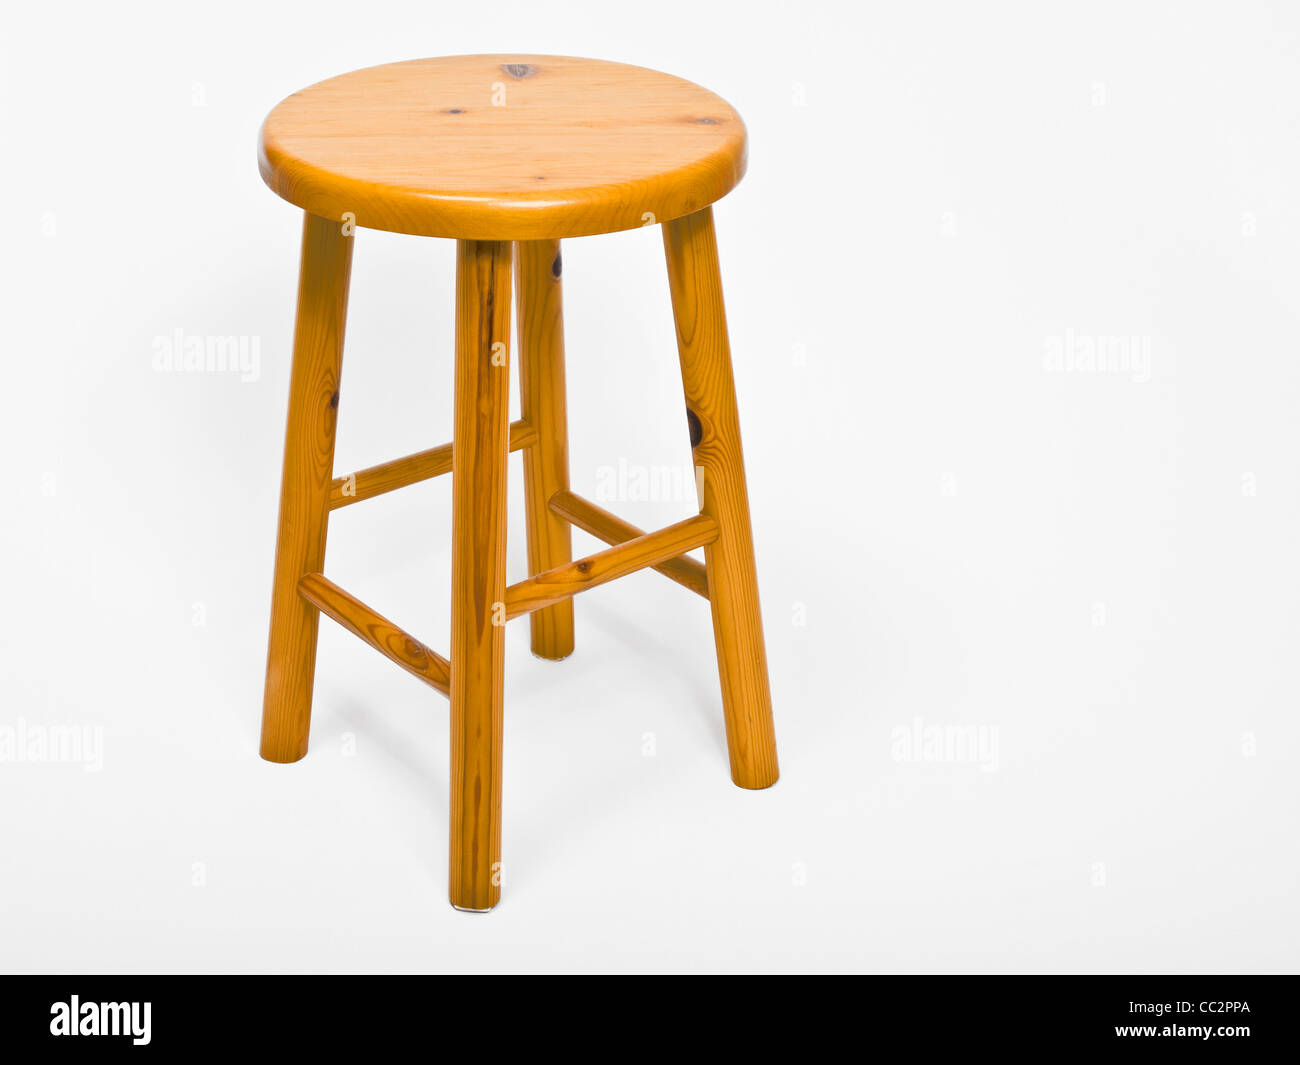 Detail photo of a wooden stool - Stock Image